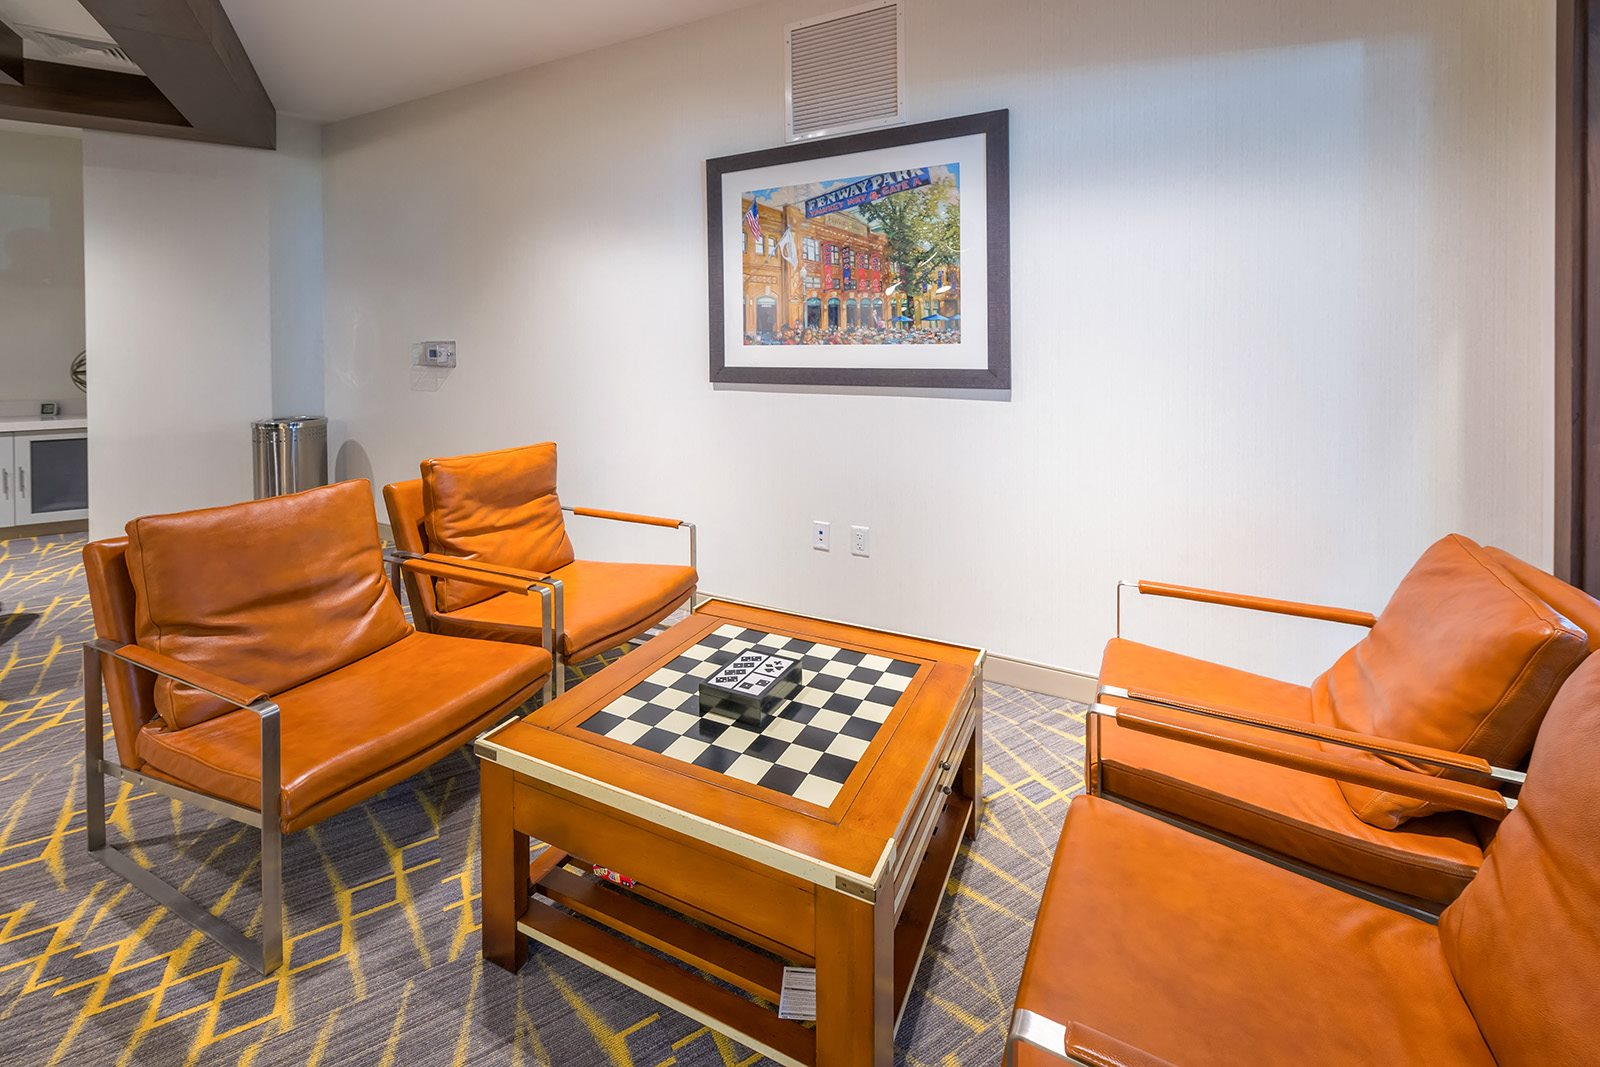 Game room with chess table at Hopkinton by Windsor, Hopkinton, Massachusetts